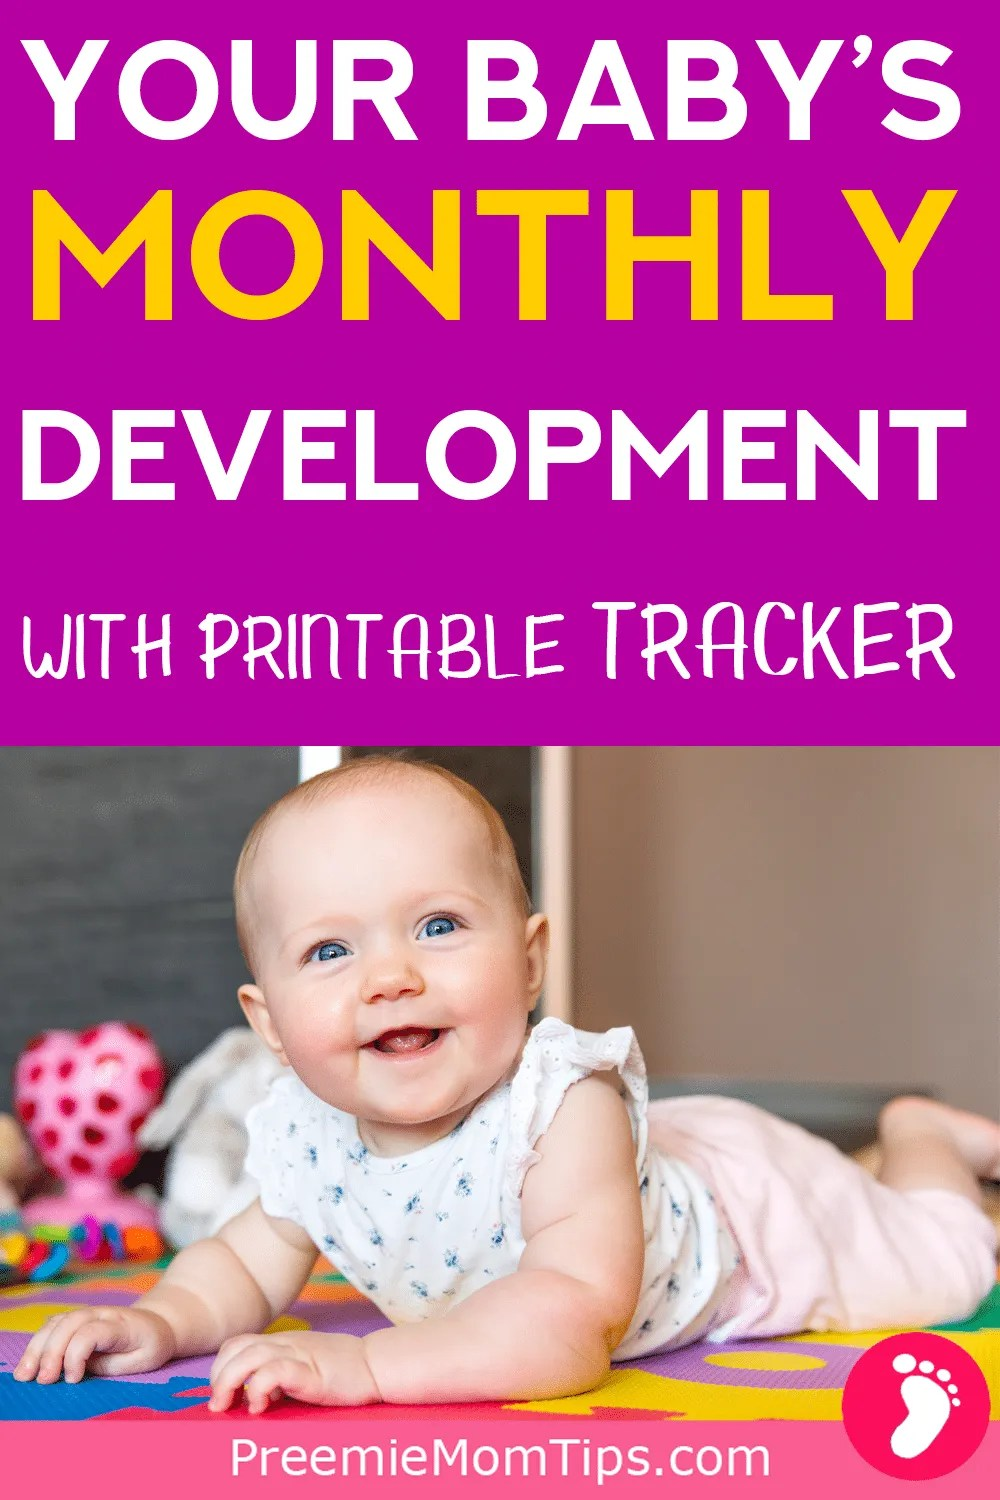 Is your baby's development on track? Check out your baby's month by month development to keep track as a new mom!